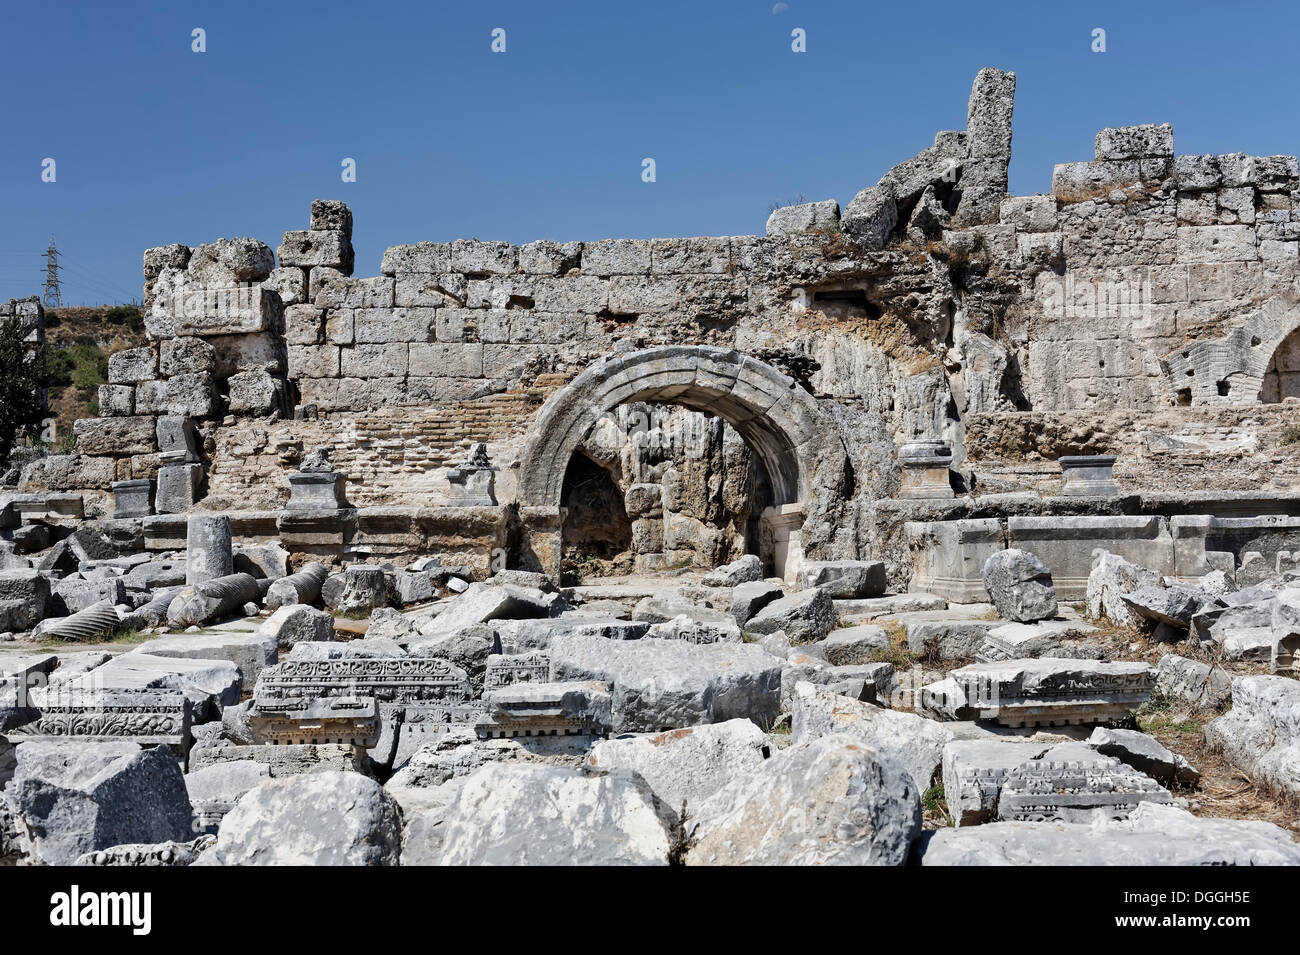 Former baths, nymphaeum and spas in the excavation site in the ancient city of Perge, Aksu, Antalya, Turkish Riviera, Turkey - Stock Image